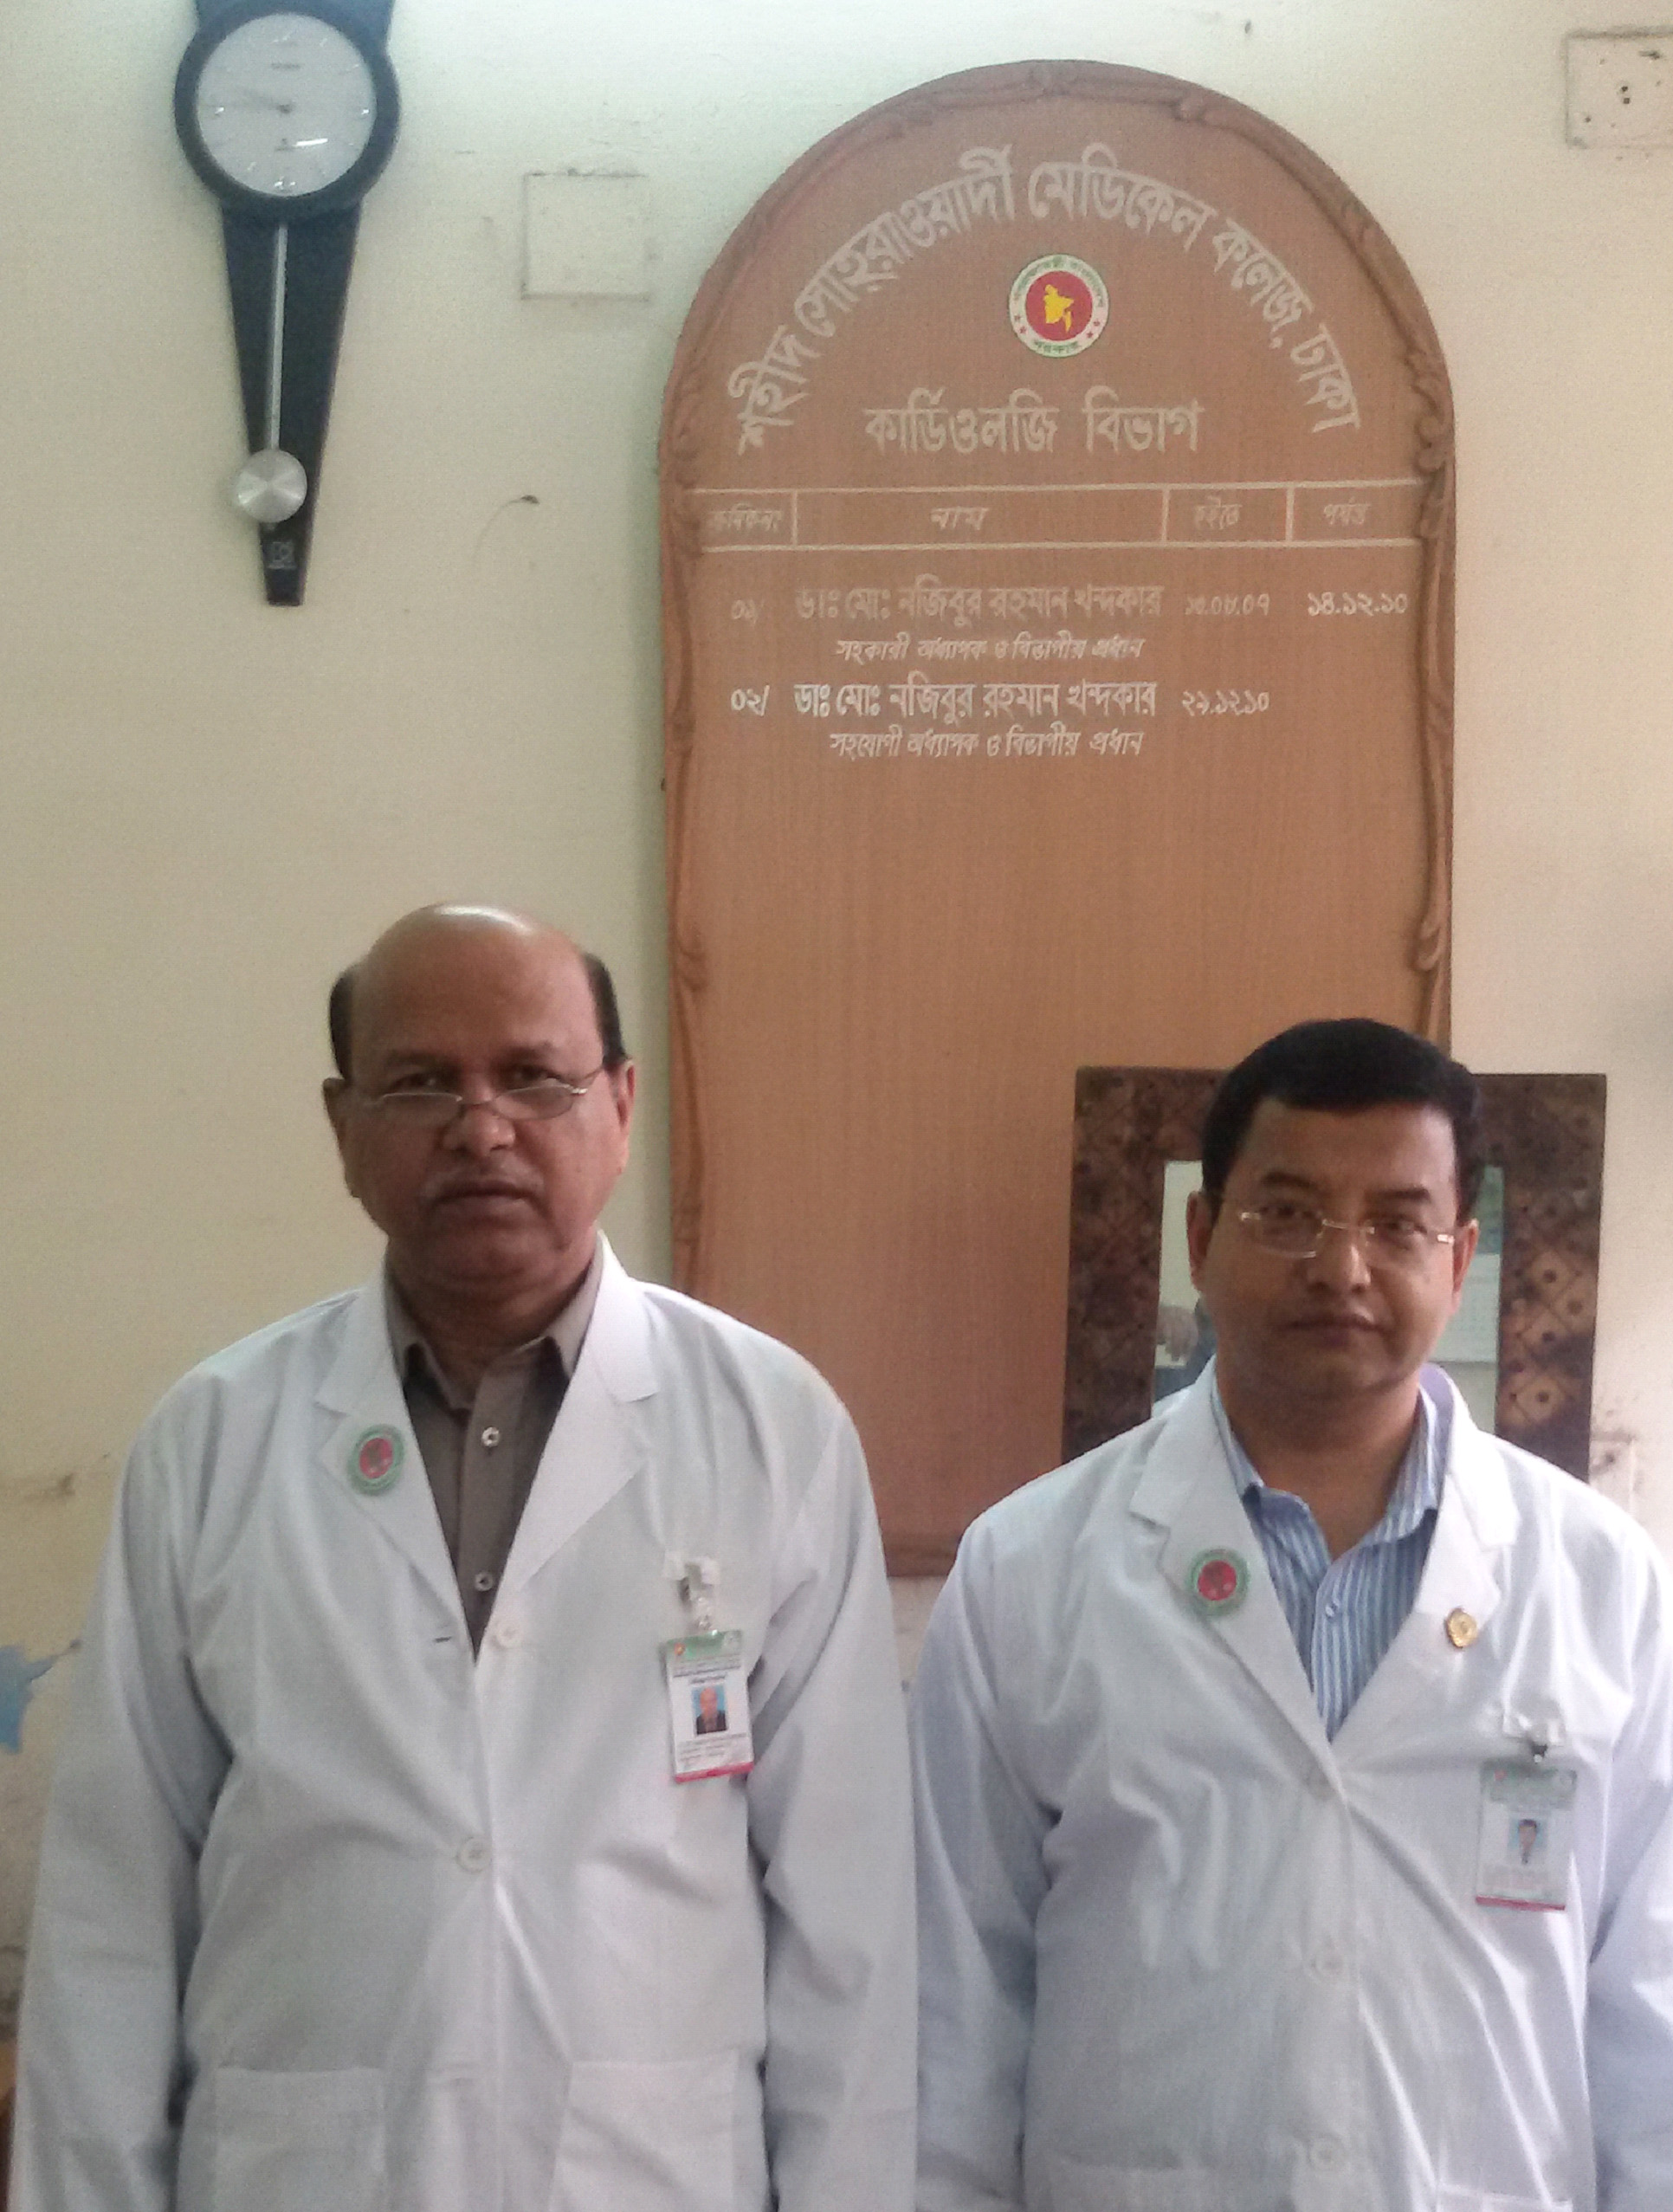 Cardiology & CCU – Shaheed Suhrawardy Medical College